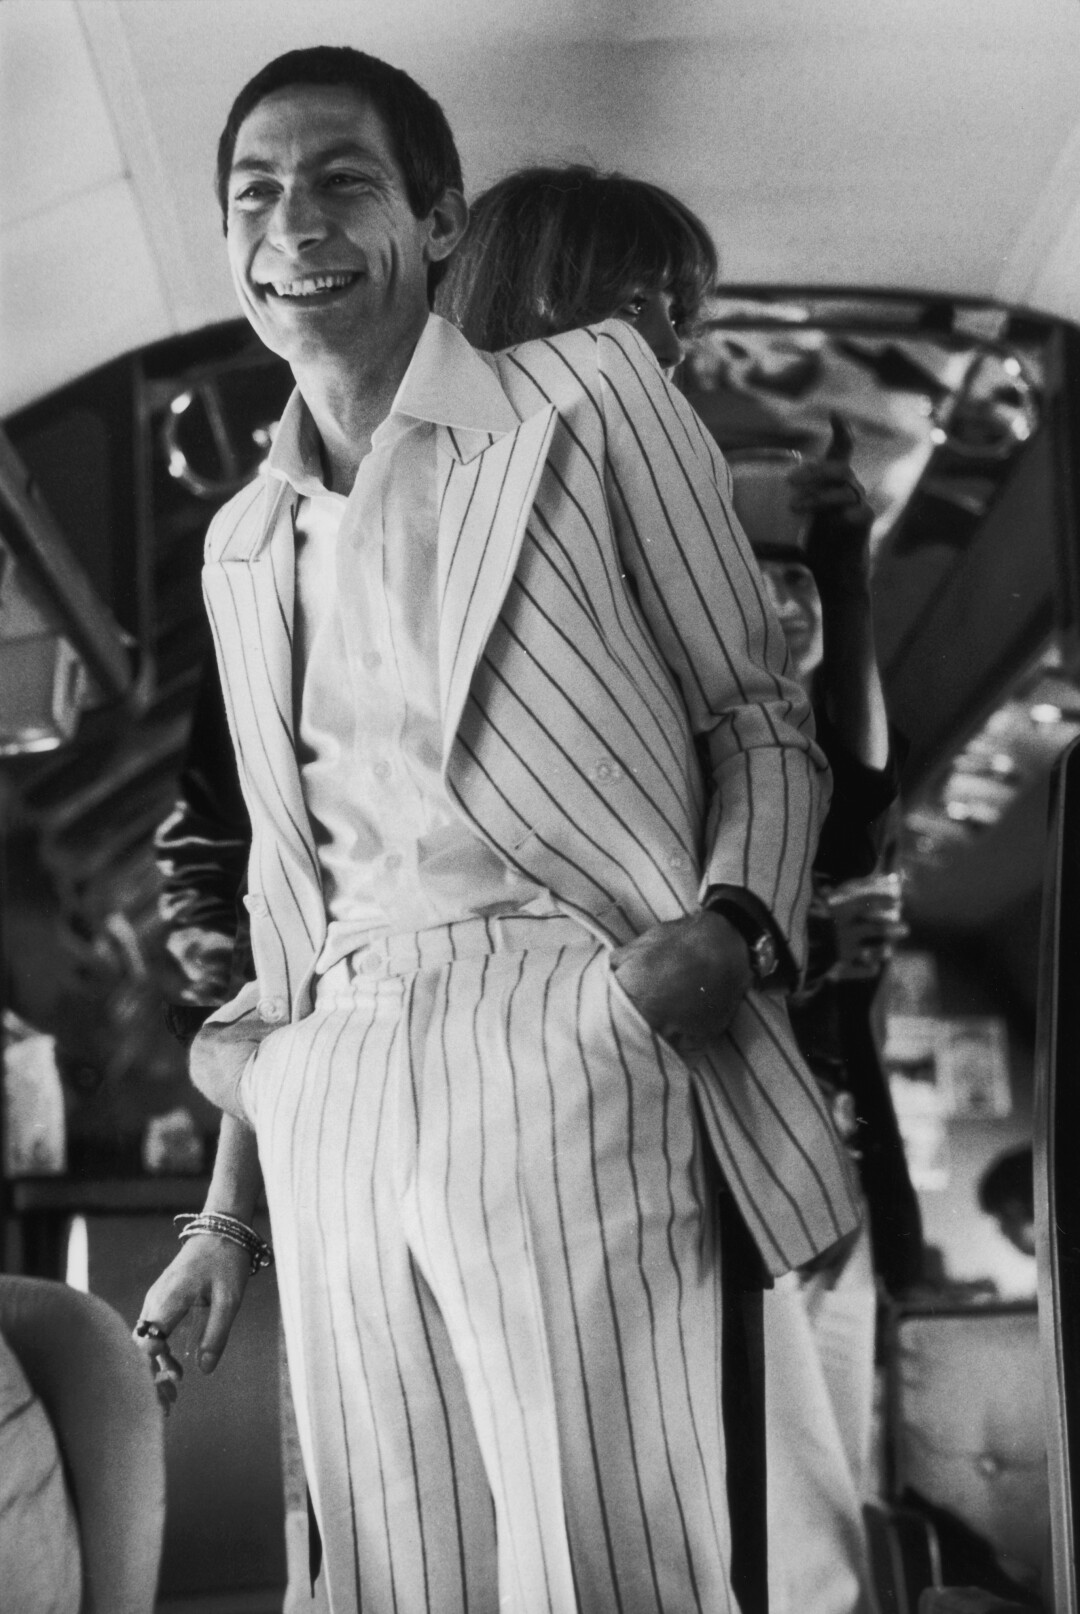 A black-and-white photo of Rolling Stones drummer Charlie Watts in a striped suit.